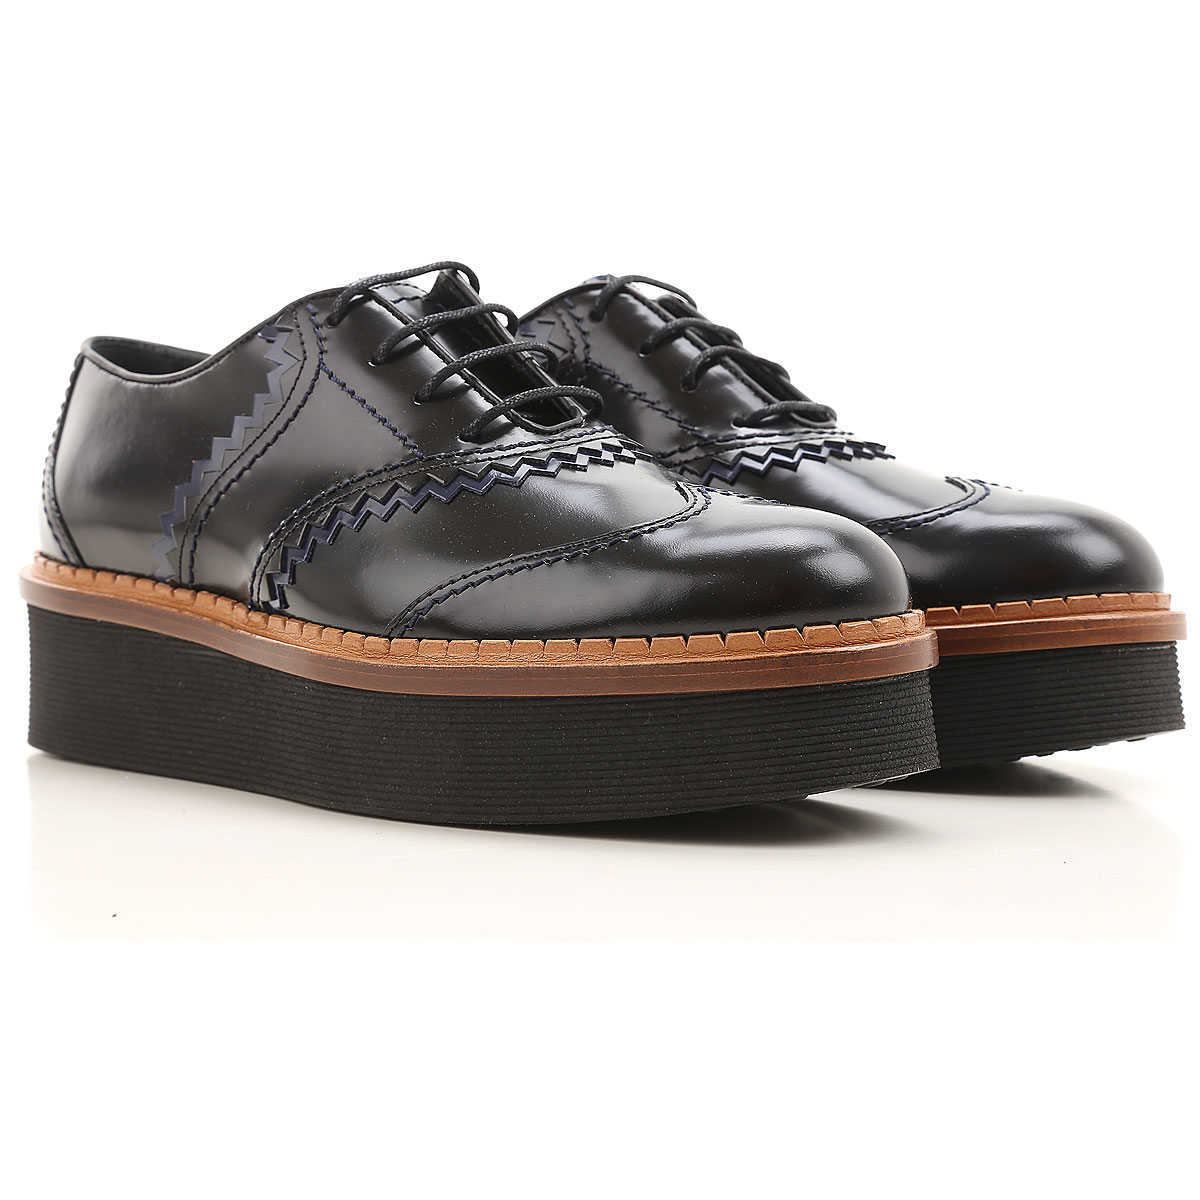 tods shoe sale